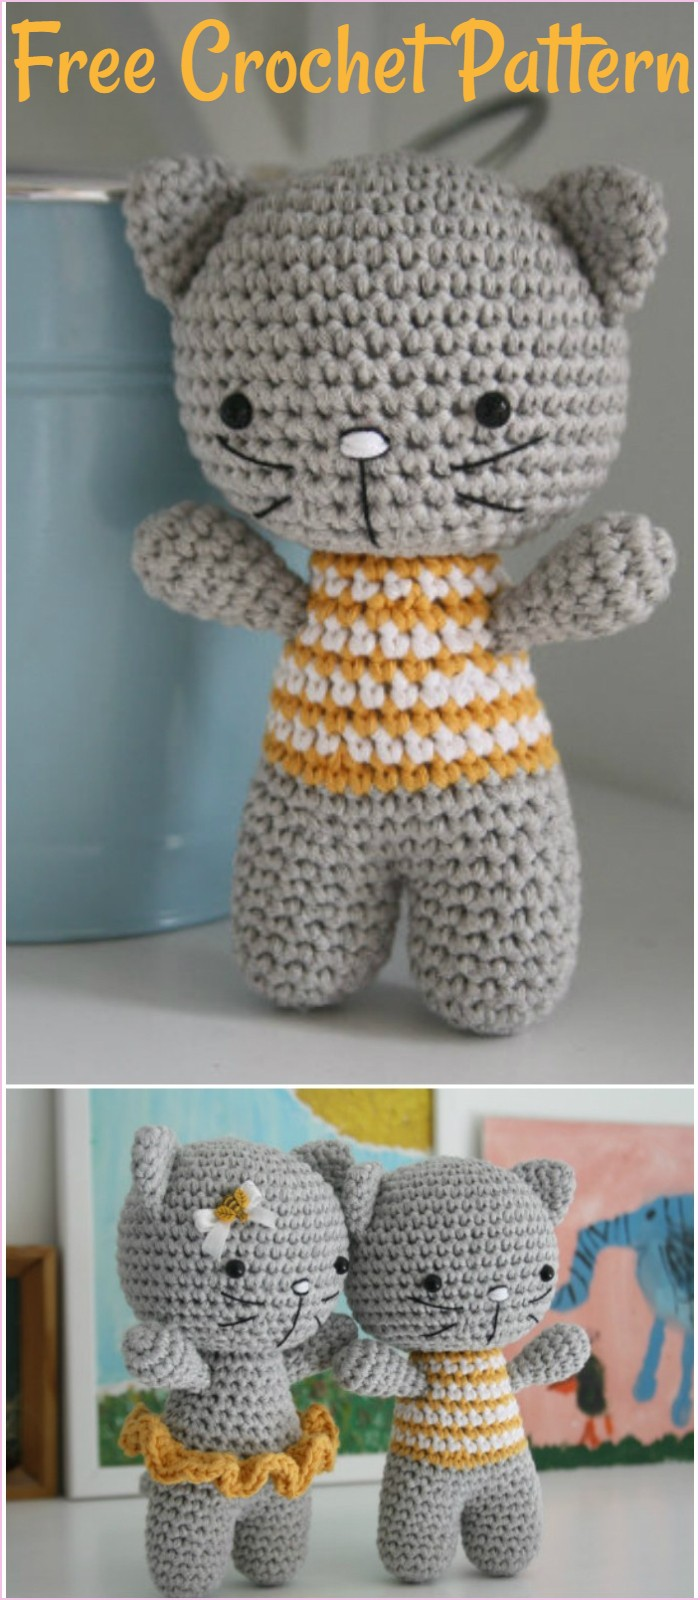 Small cat with joined legs | Free amigurumi and crochet patterns ... | 1600x700